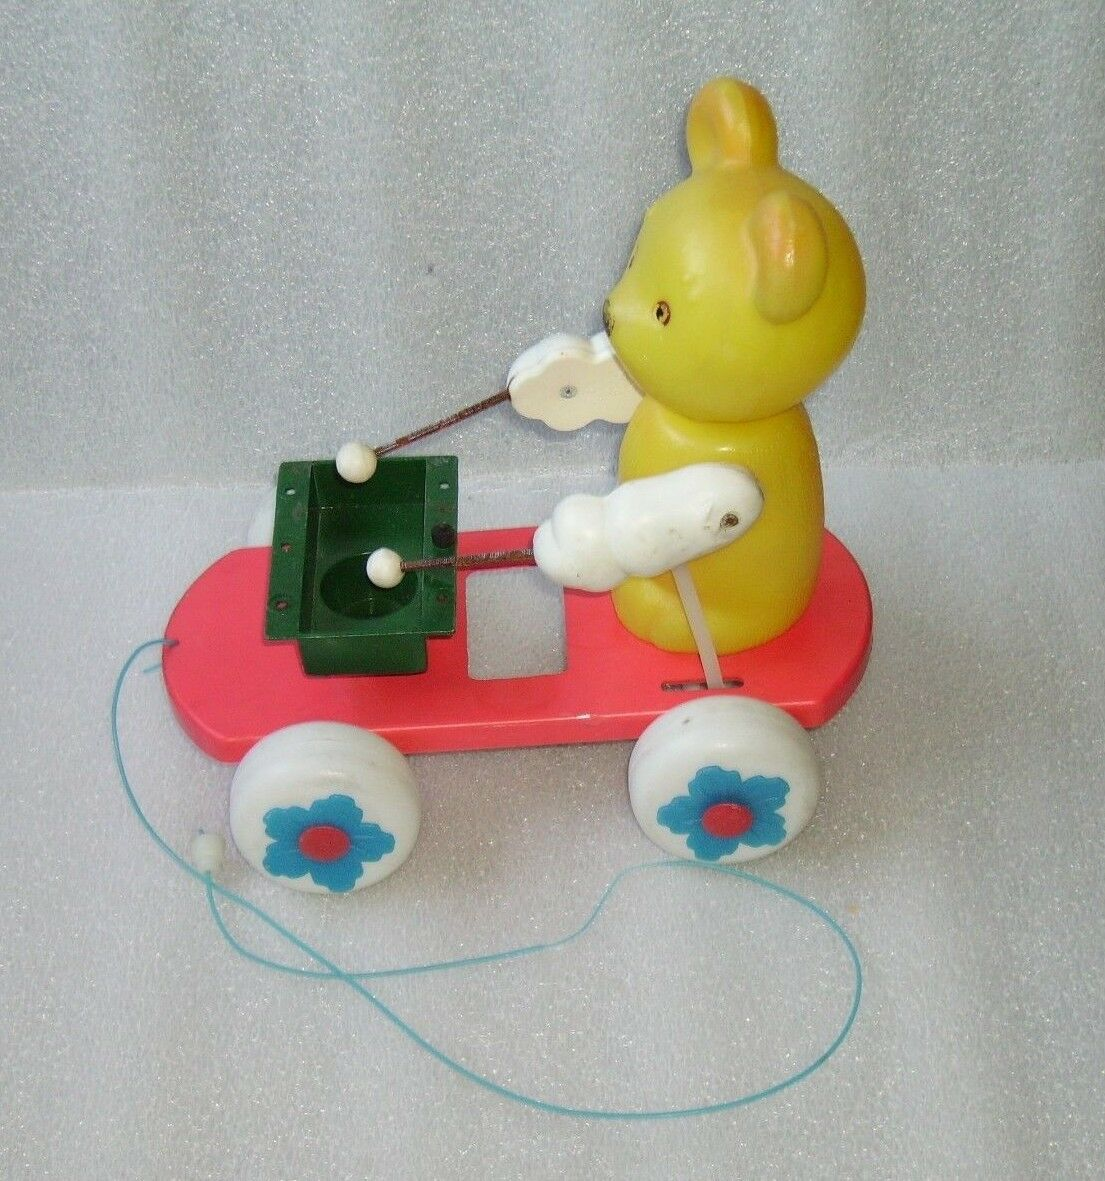 RARE VINTAGE NICE PULL PLASTIC TOY - BEAR ON WHEELS, PROBABLY USSR RUSSIA, 1970s